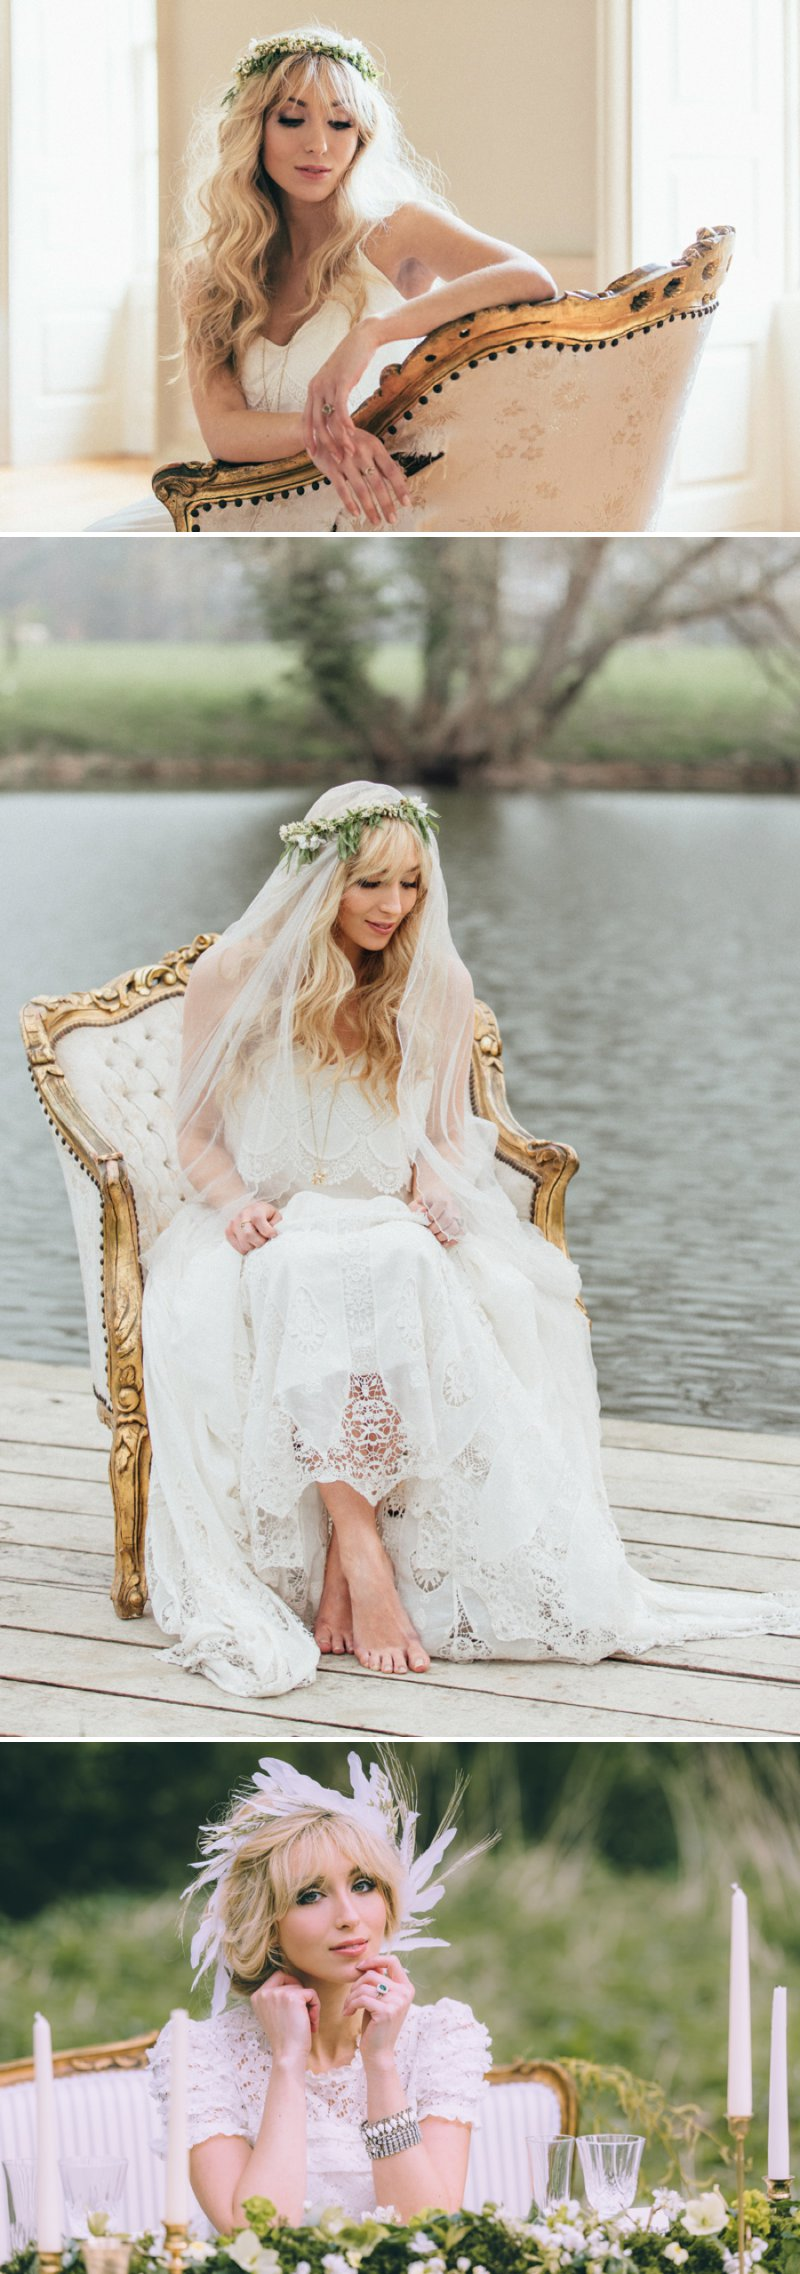 Rustic Bridal Shoot From Coco Venues And Katrina Otter Weddings And Events Inspired By The Promise Of Spring At Narborough Hall Gardens With Dresses From Rue De Seine Bridal With Images From Rebecca Goddard 1 A New Beginning.